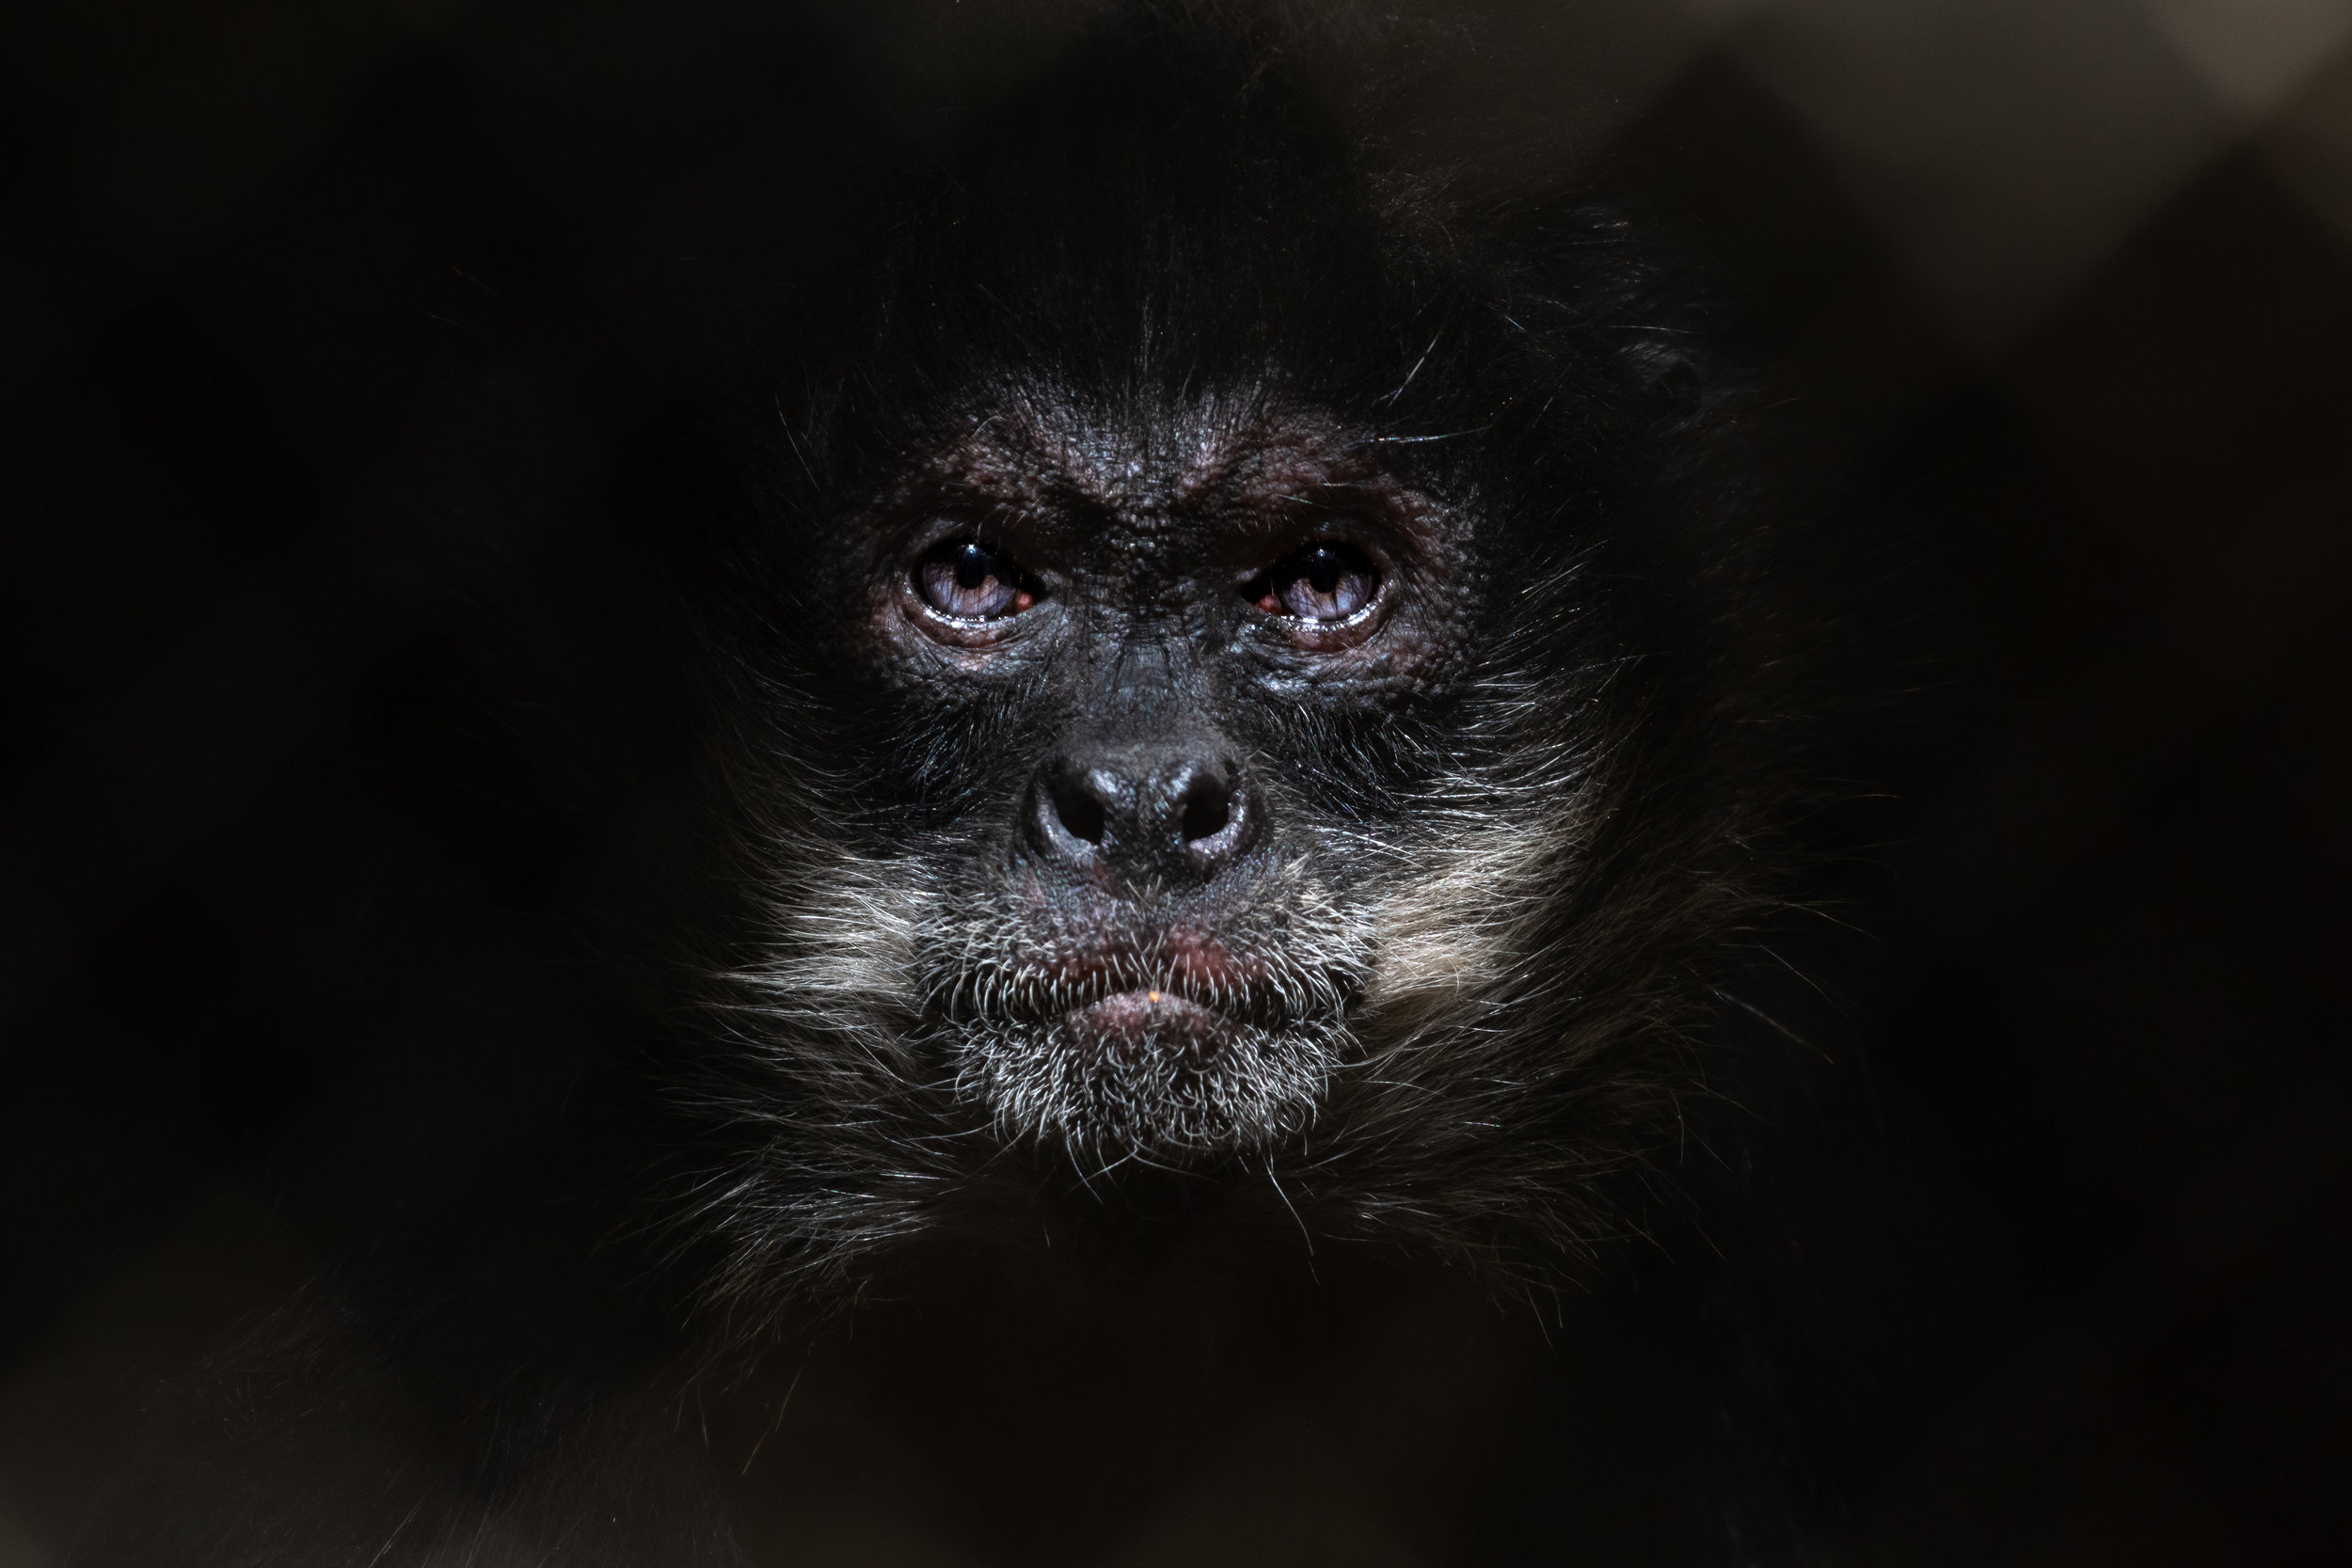 spider_monkey (1 of 1).jpg